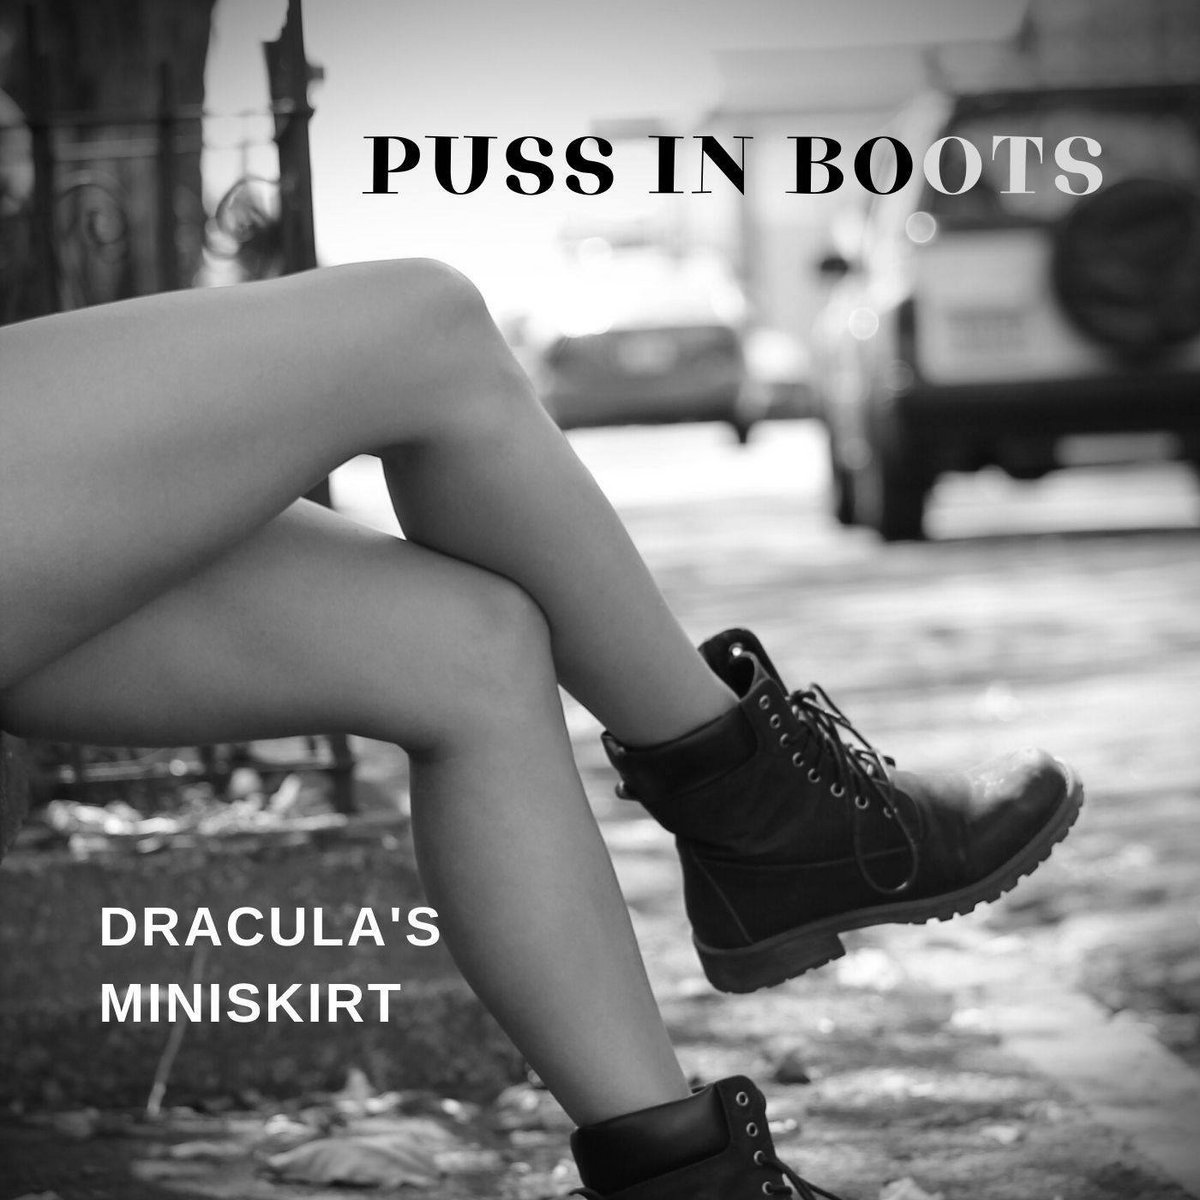 Puss in Boots by Dracula's Miniskirt